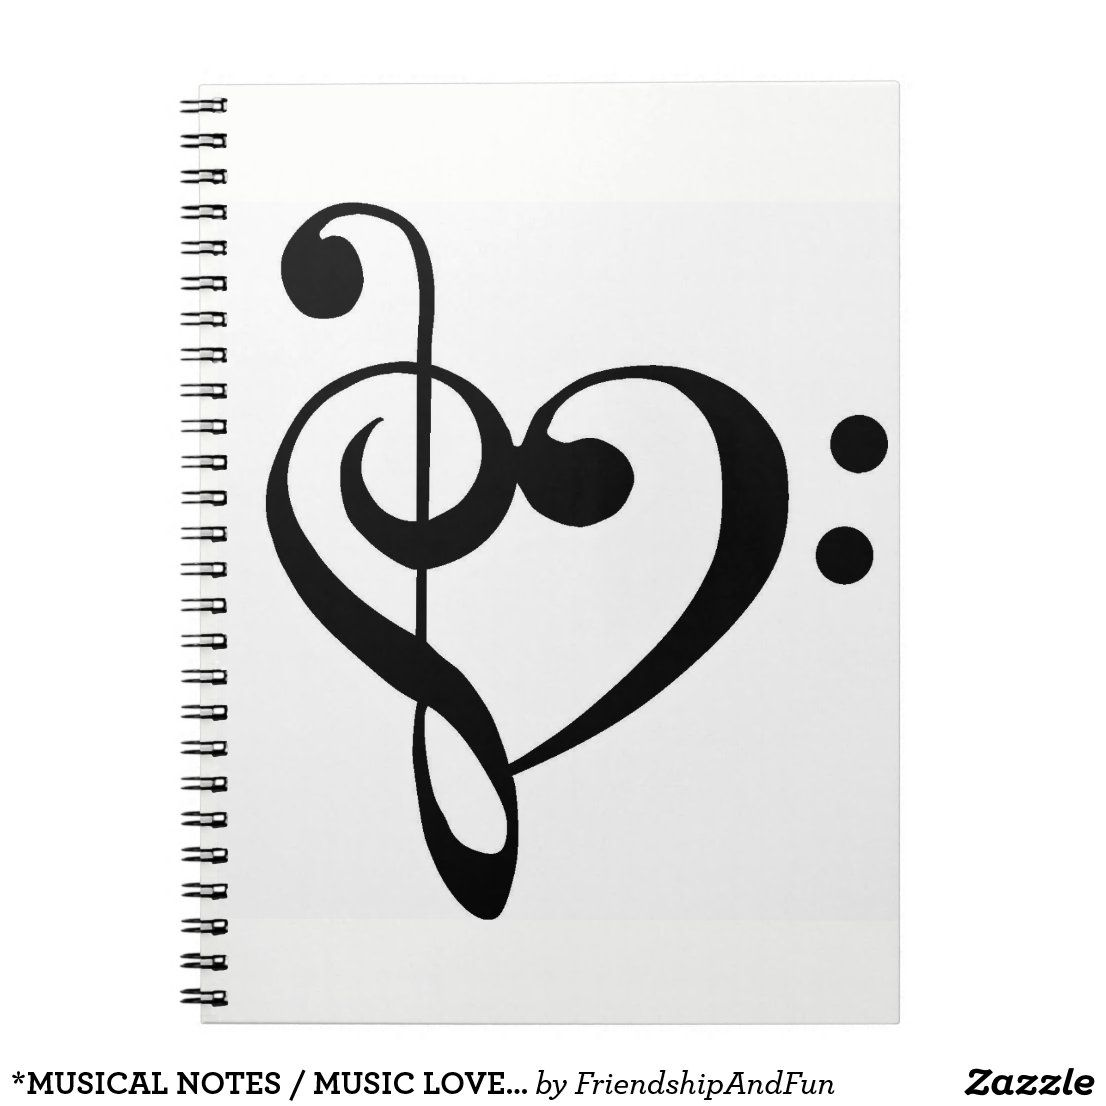 Musical Notes Music Lover S Notebook Zazzle Com In 2021 Music Notes Drawing Music Notes Art Music Notes Tattoo